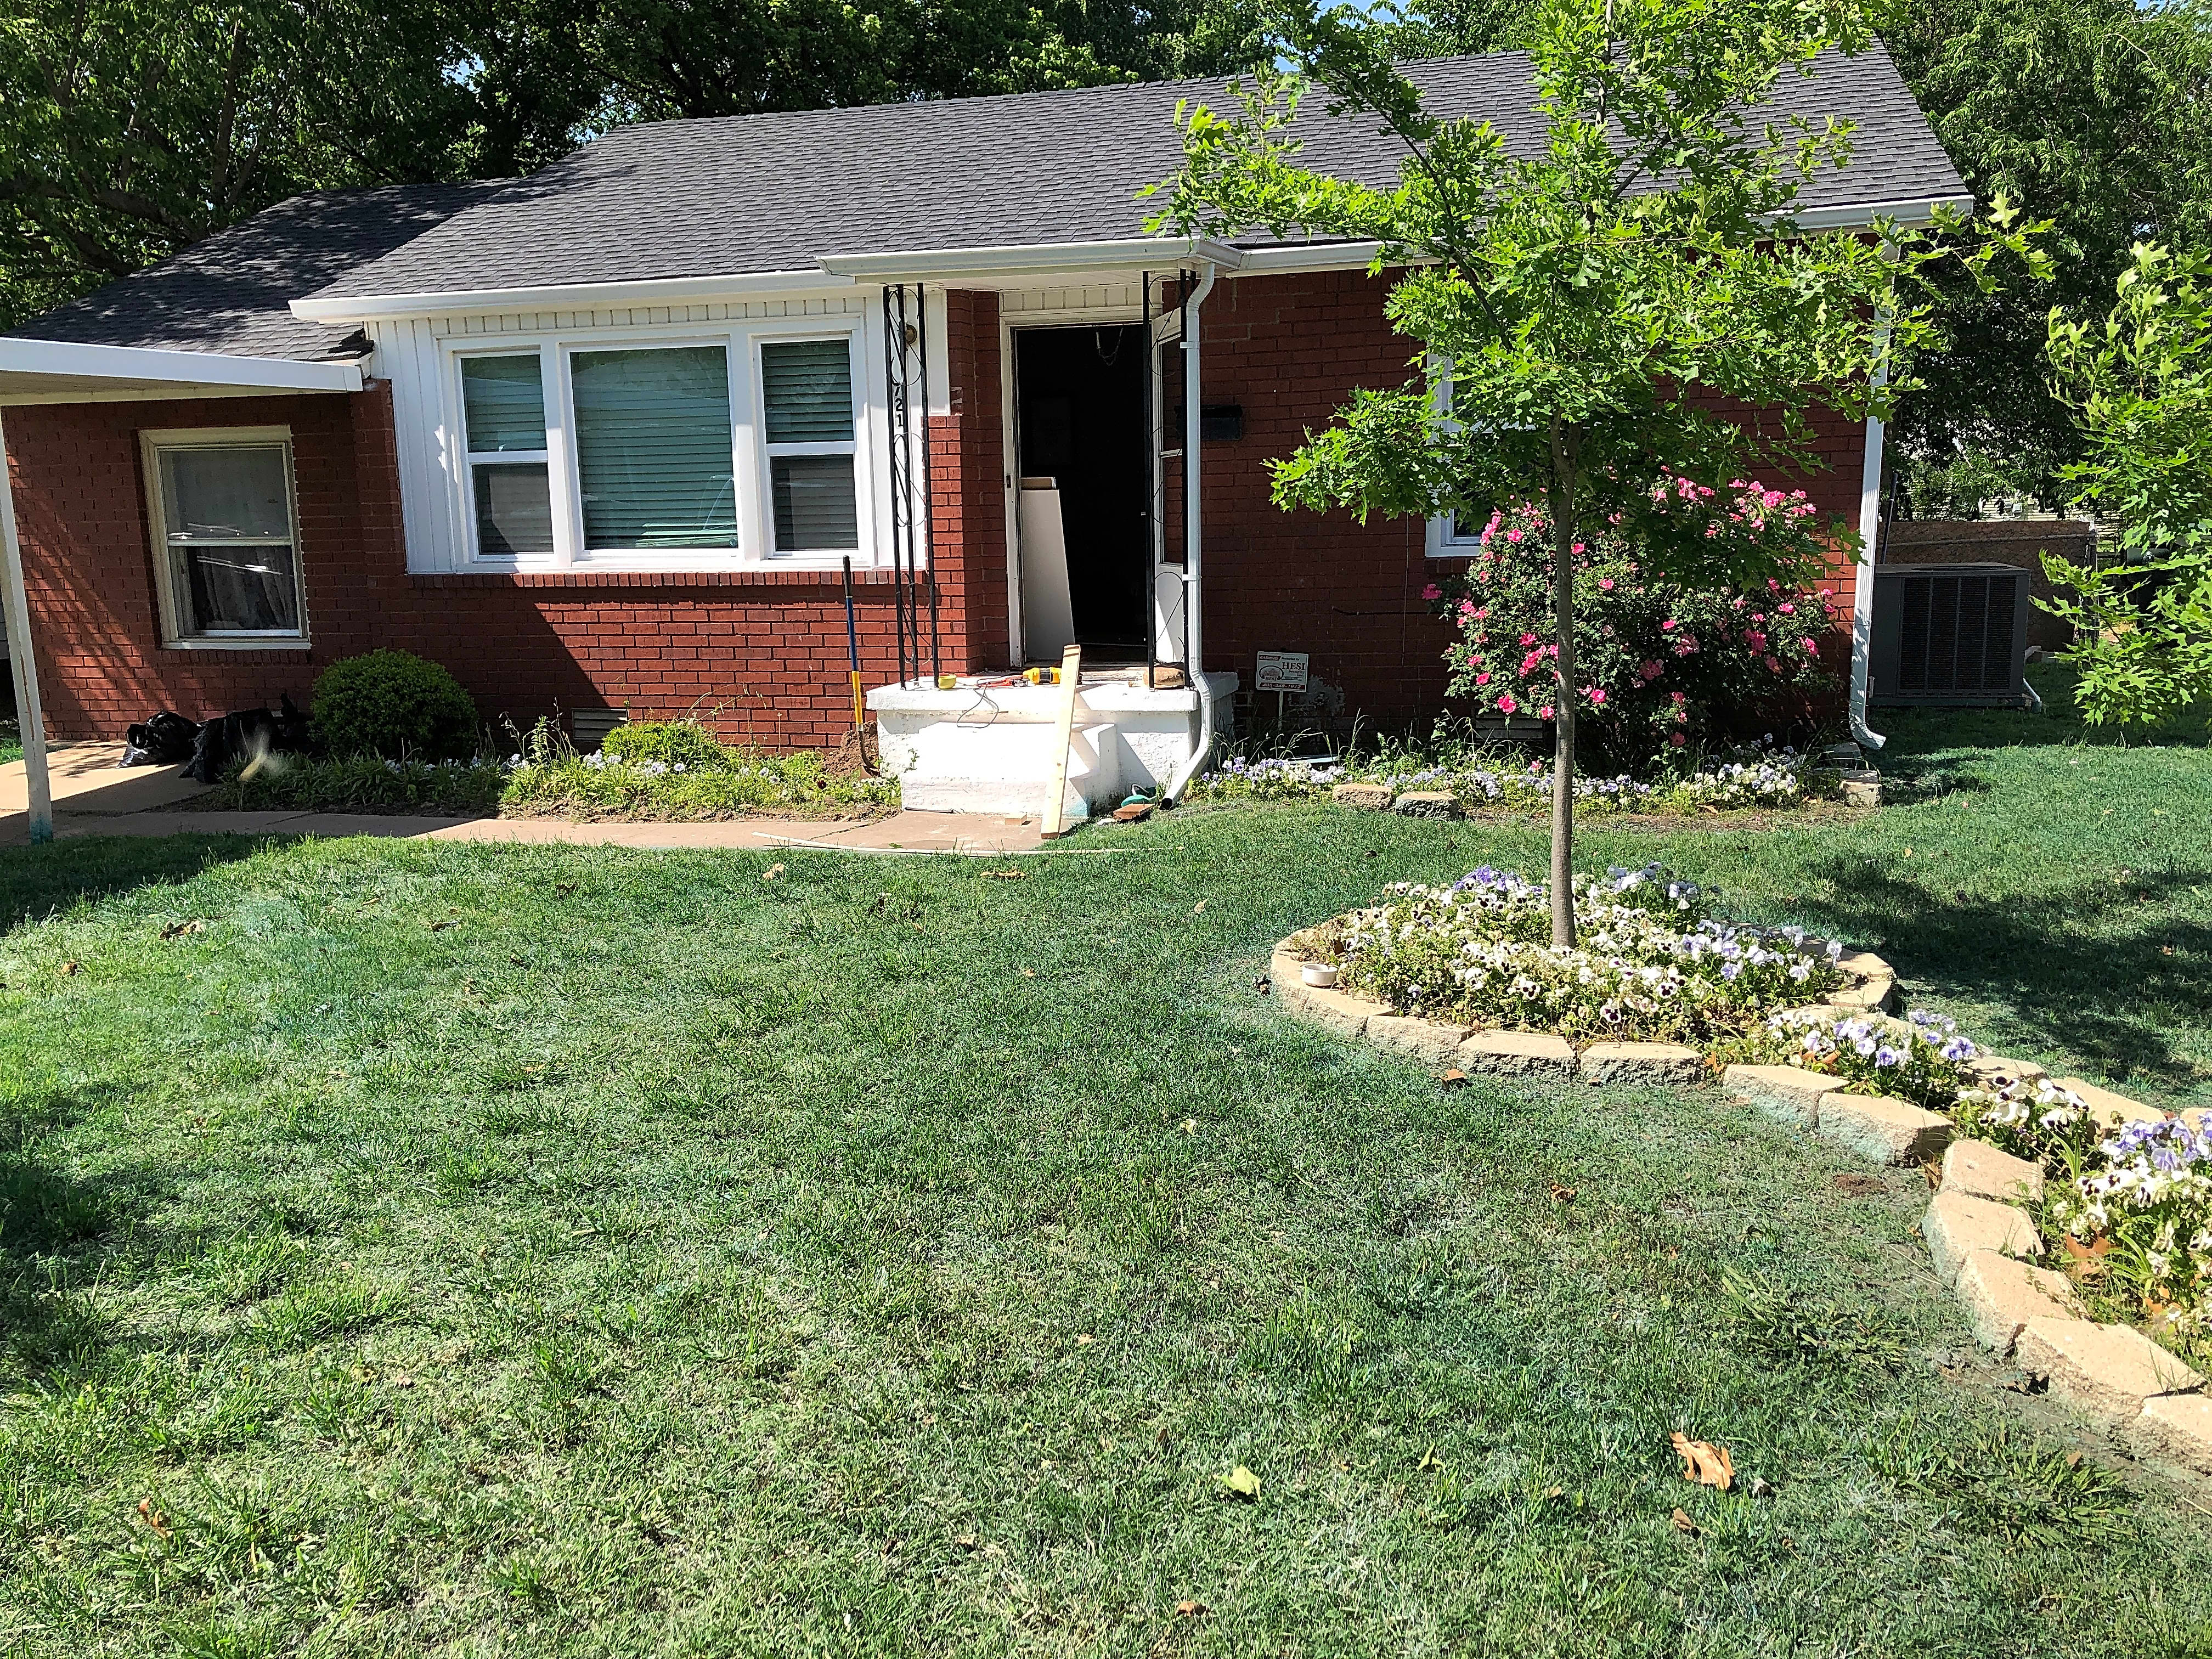 House for Rent in Mid-west City